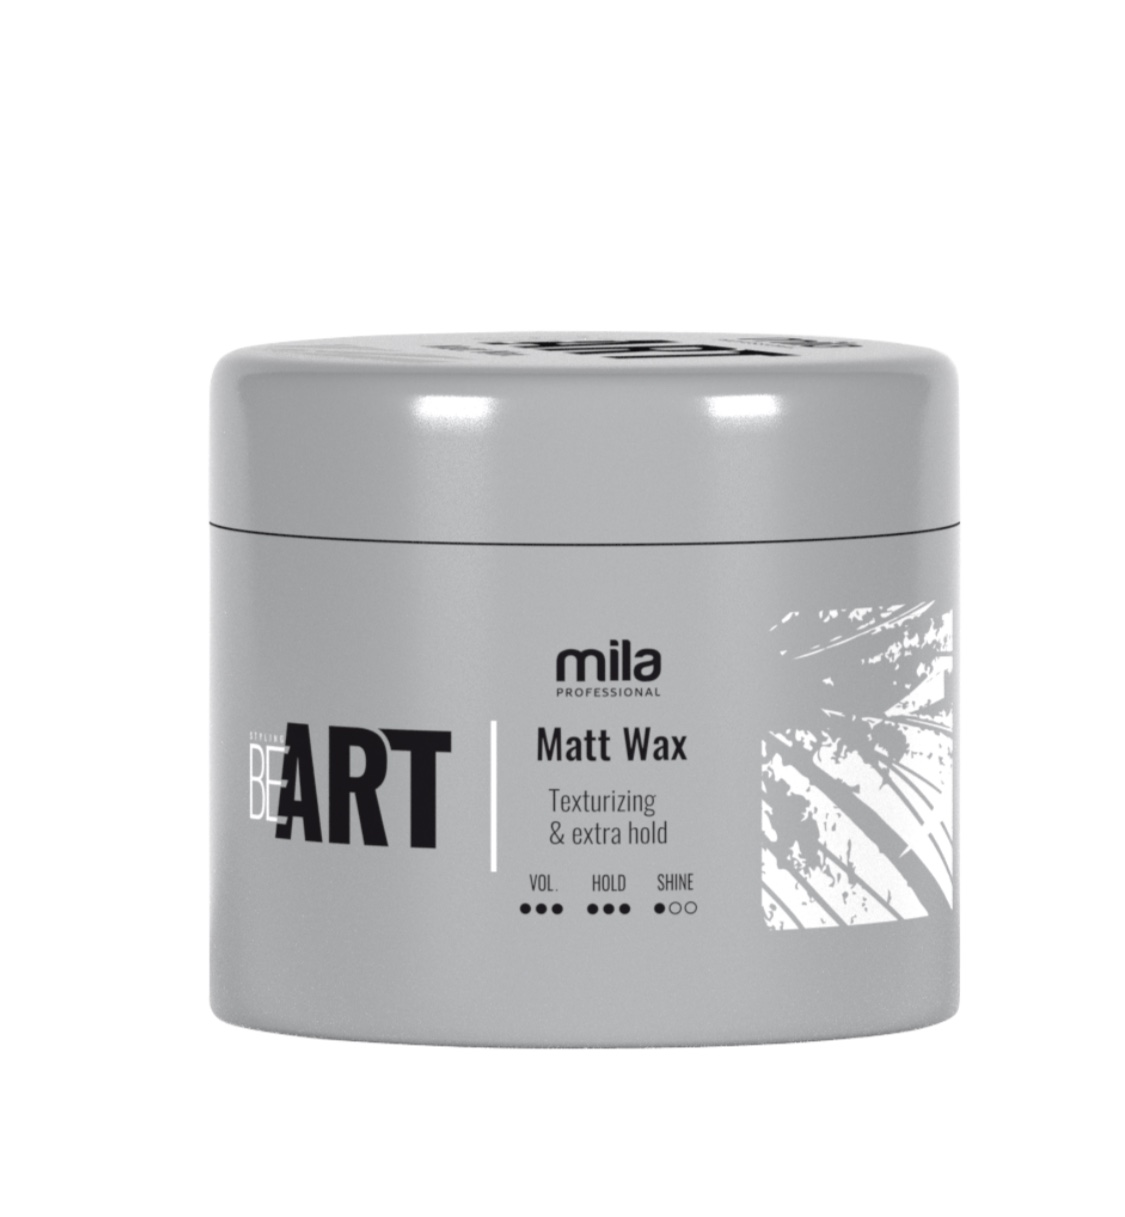 MATNÝ VOSK MILA BE ART 100ml